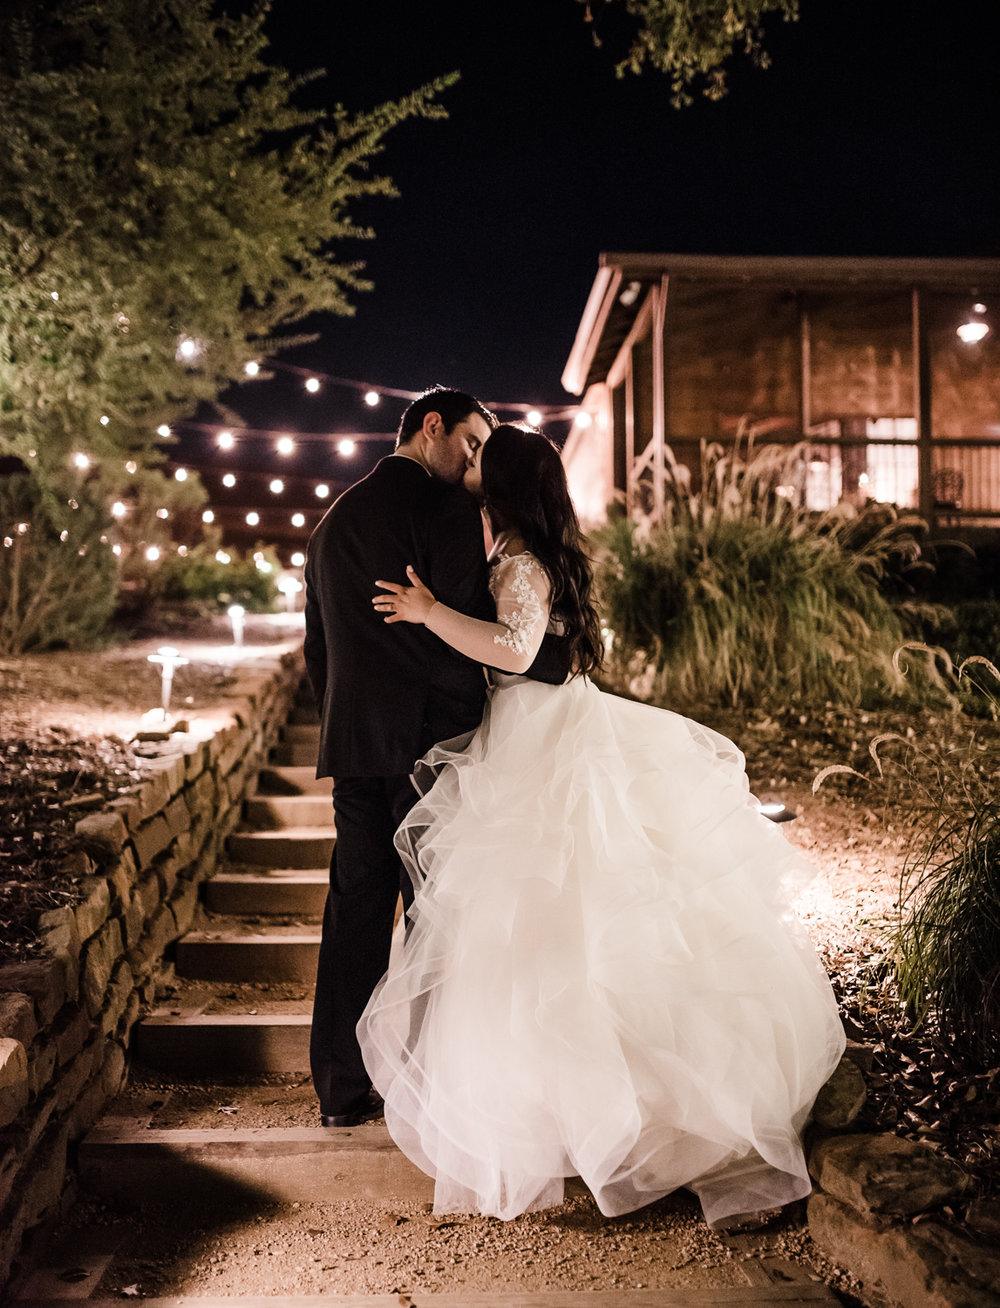 Sweet Nest Photography - Houston Texas - Houston Wedding - Big Sky Barn-4.jpg